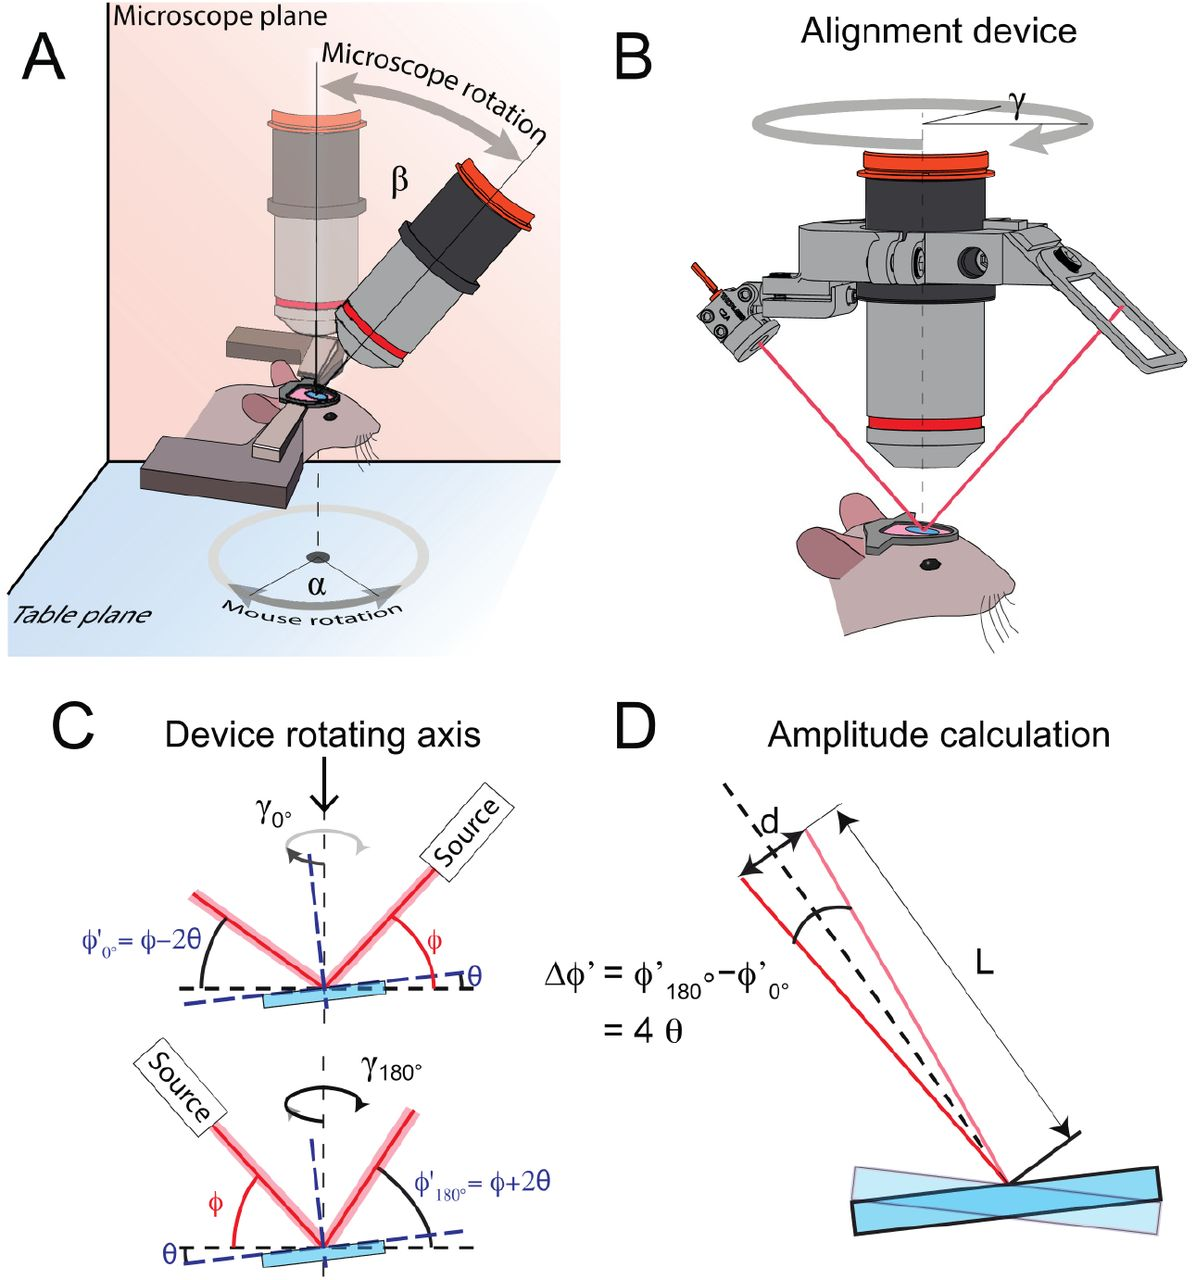 Optical alignment device for two-photon microscopy | bioRxiv